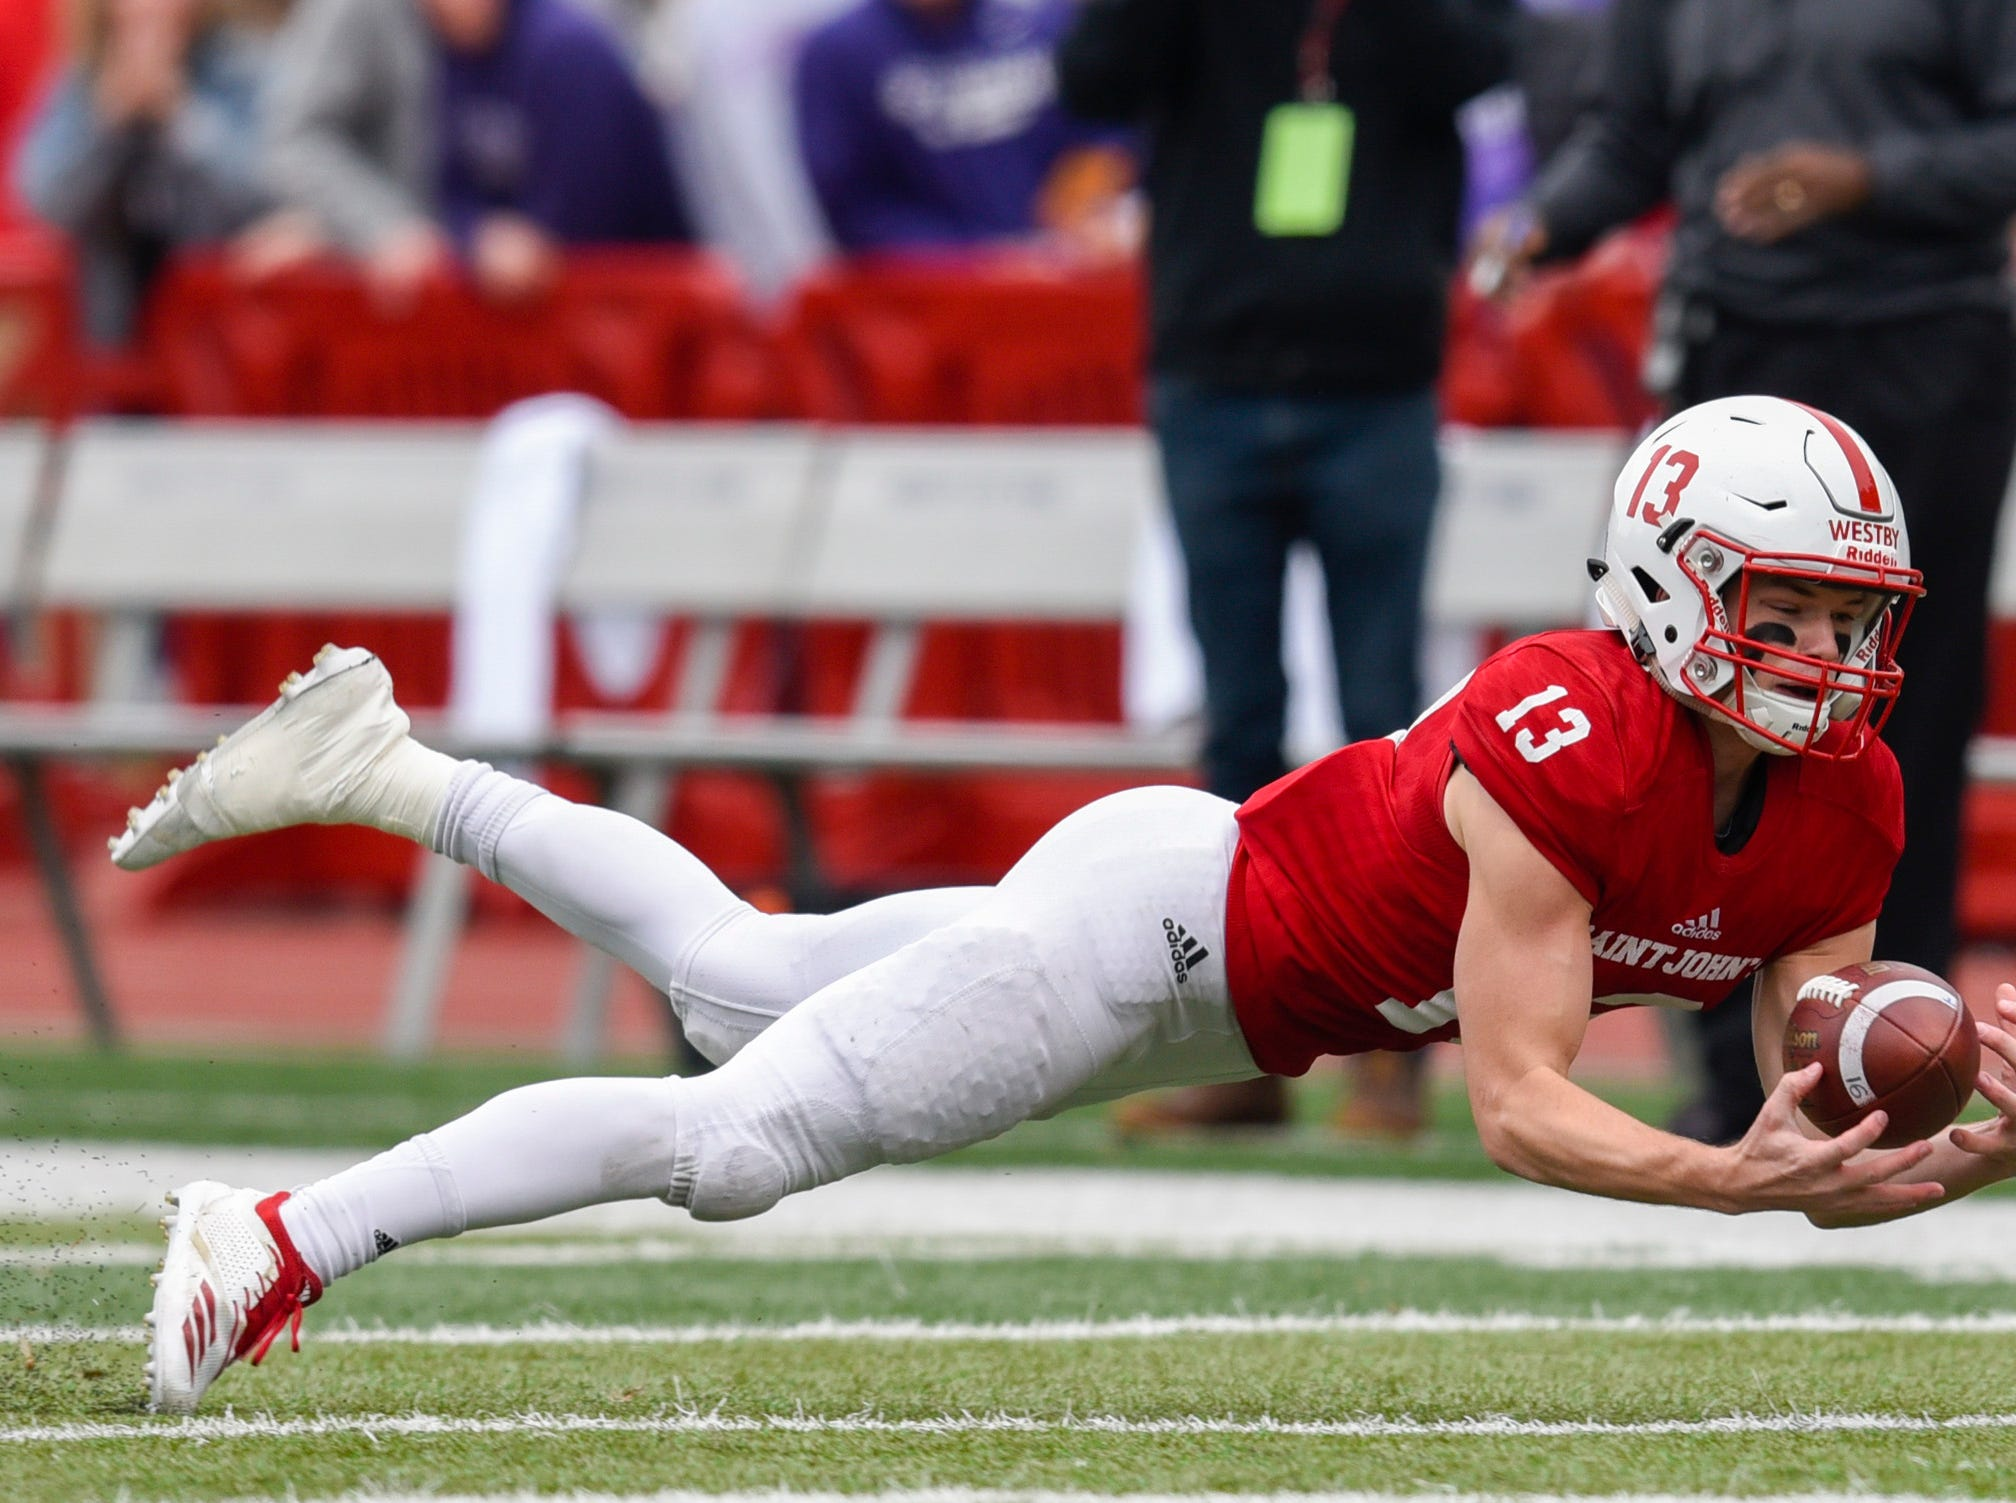 St. John's defensive corner Sam Westby dives to make an interception against St. Thomas during the first half Saturday, Oct. 13, in Collegeville.